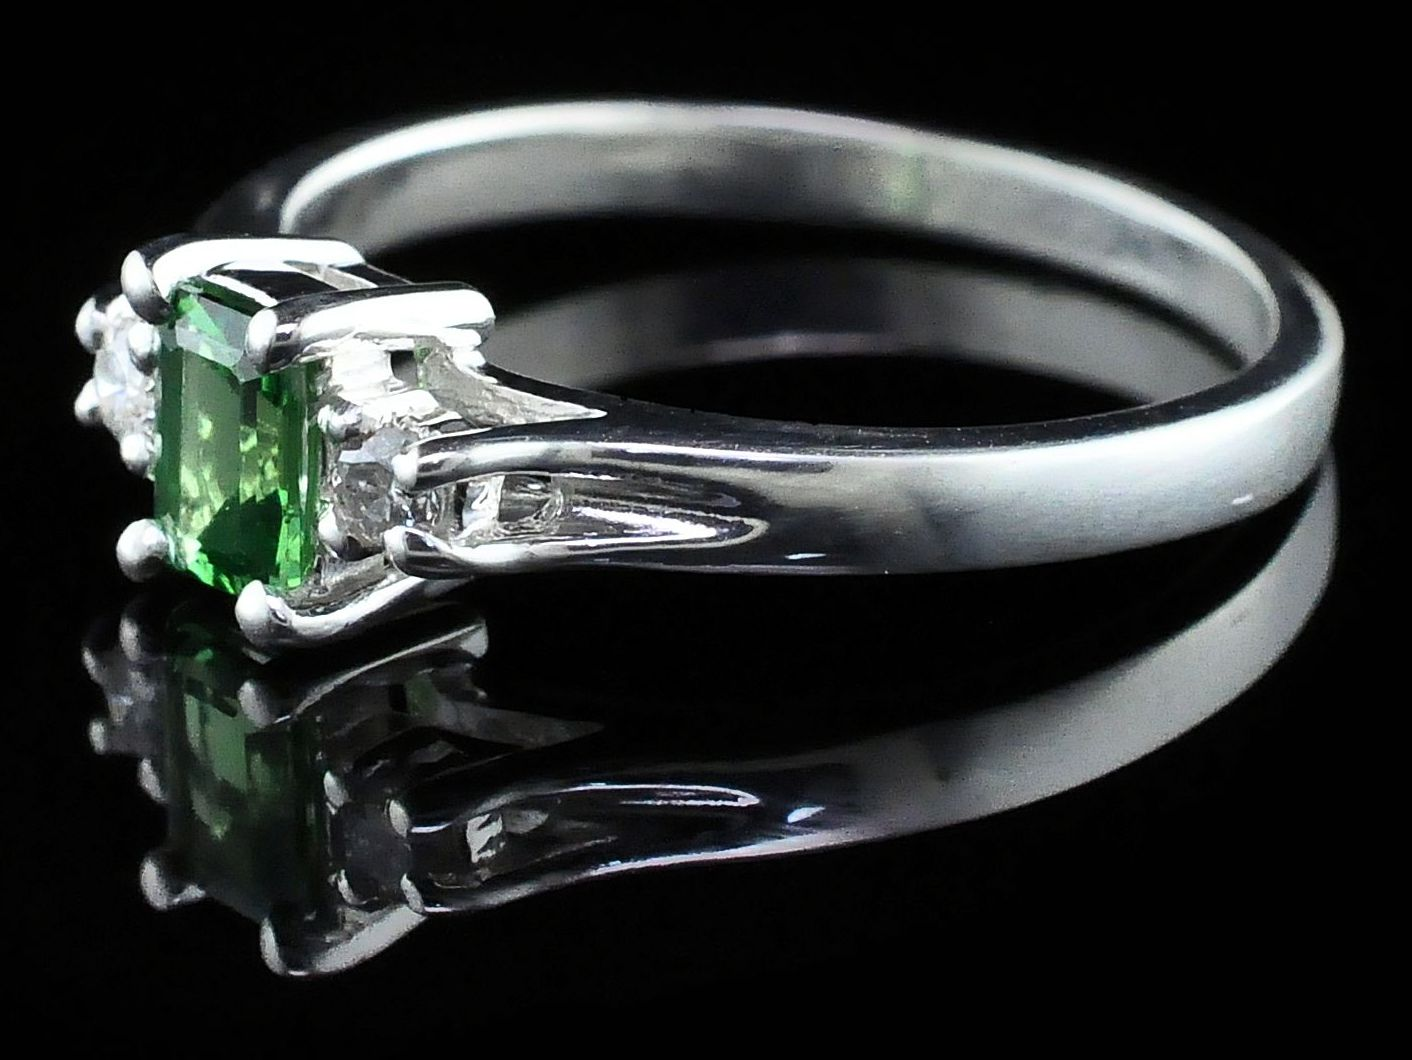 Silver Rings With Stones - Tsavorite Garnet And Diamond Three Stone Ring - image #2